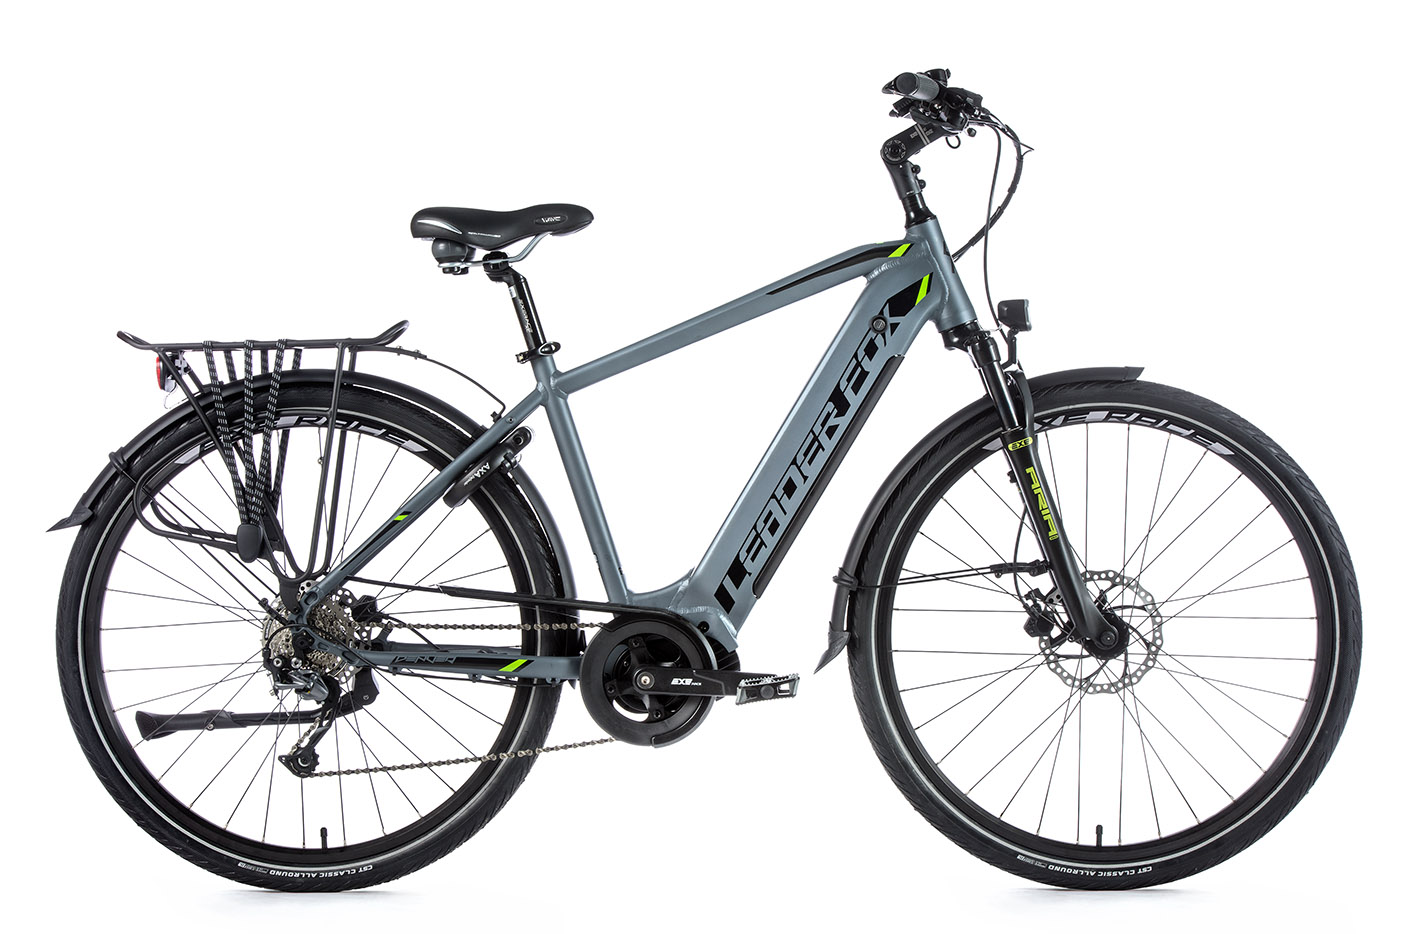 Bicicleta electrica Trekking Leader Fox Denver Gent, 2020